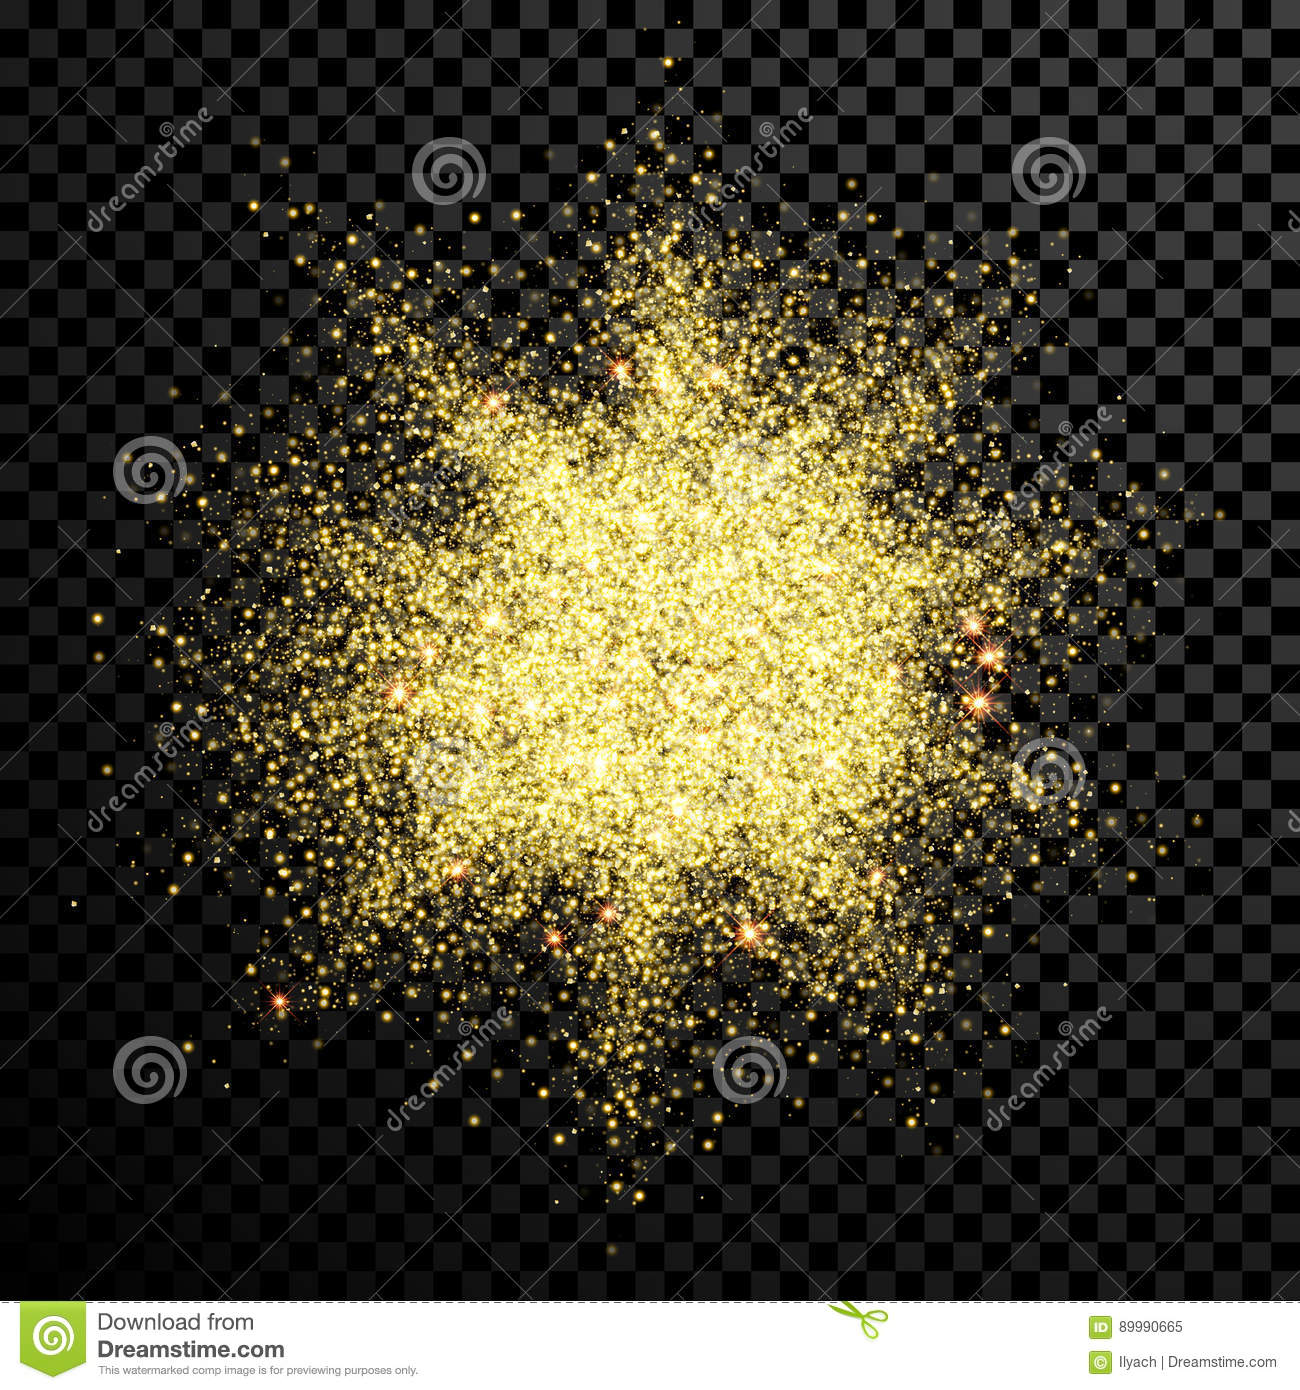 Gold glitter bright vector transparent background golden sparkles - Gold Glitter Powder Shining Sparkles On Vector Transparent Background Royalty Free Stock Photo